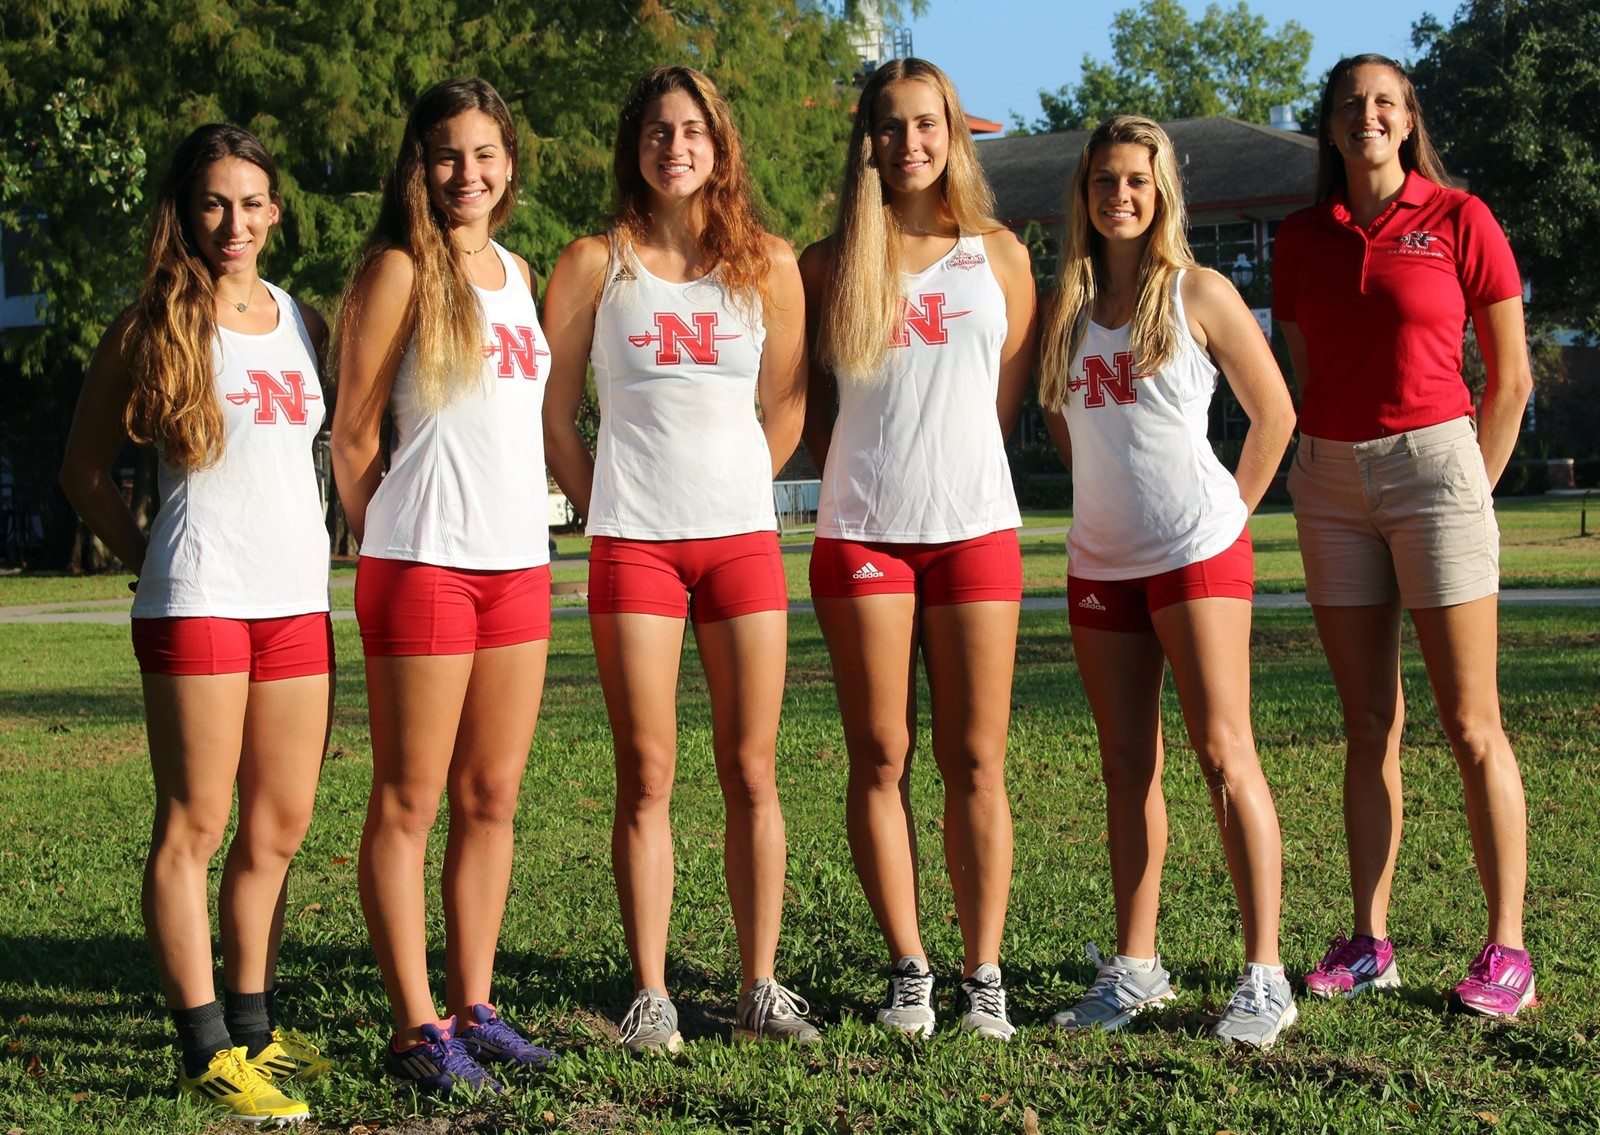 2017 Women s Cross Country Roster - Nicholls State University Athletics c616d0e5e817